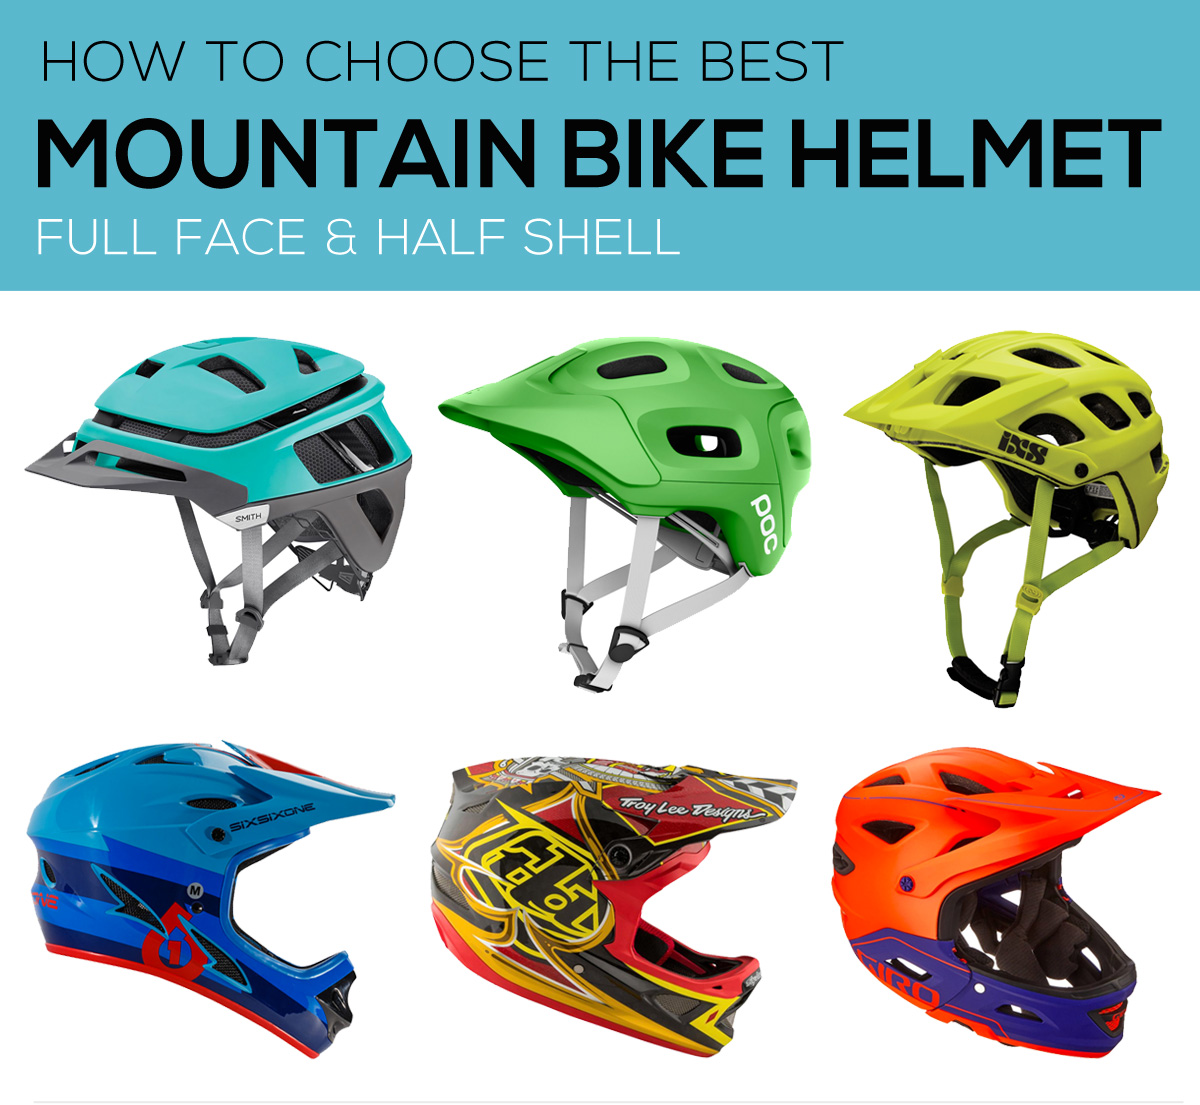 632187492c How to Choose the Best Mountain Bike Helmet - Singletracks Mountain Bike  News